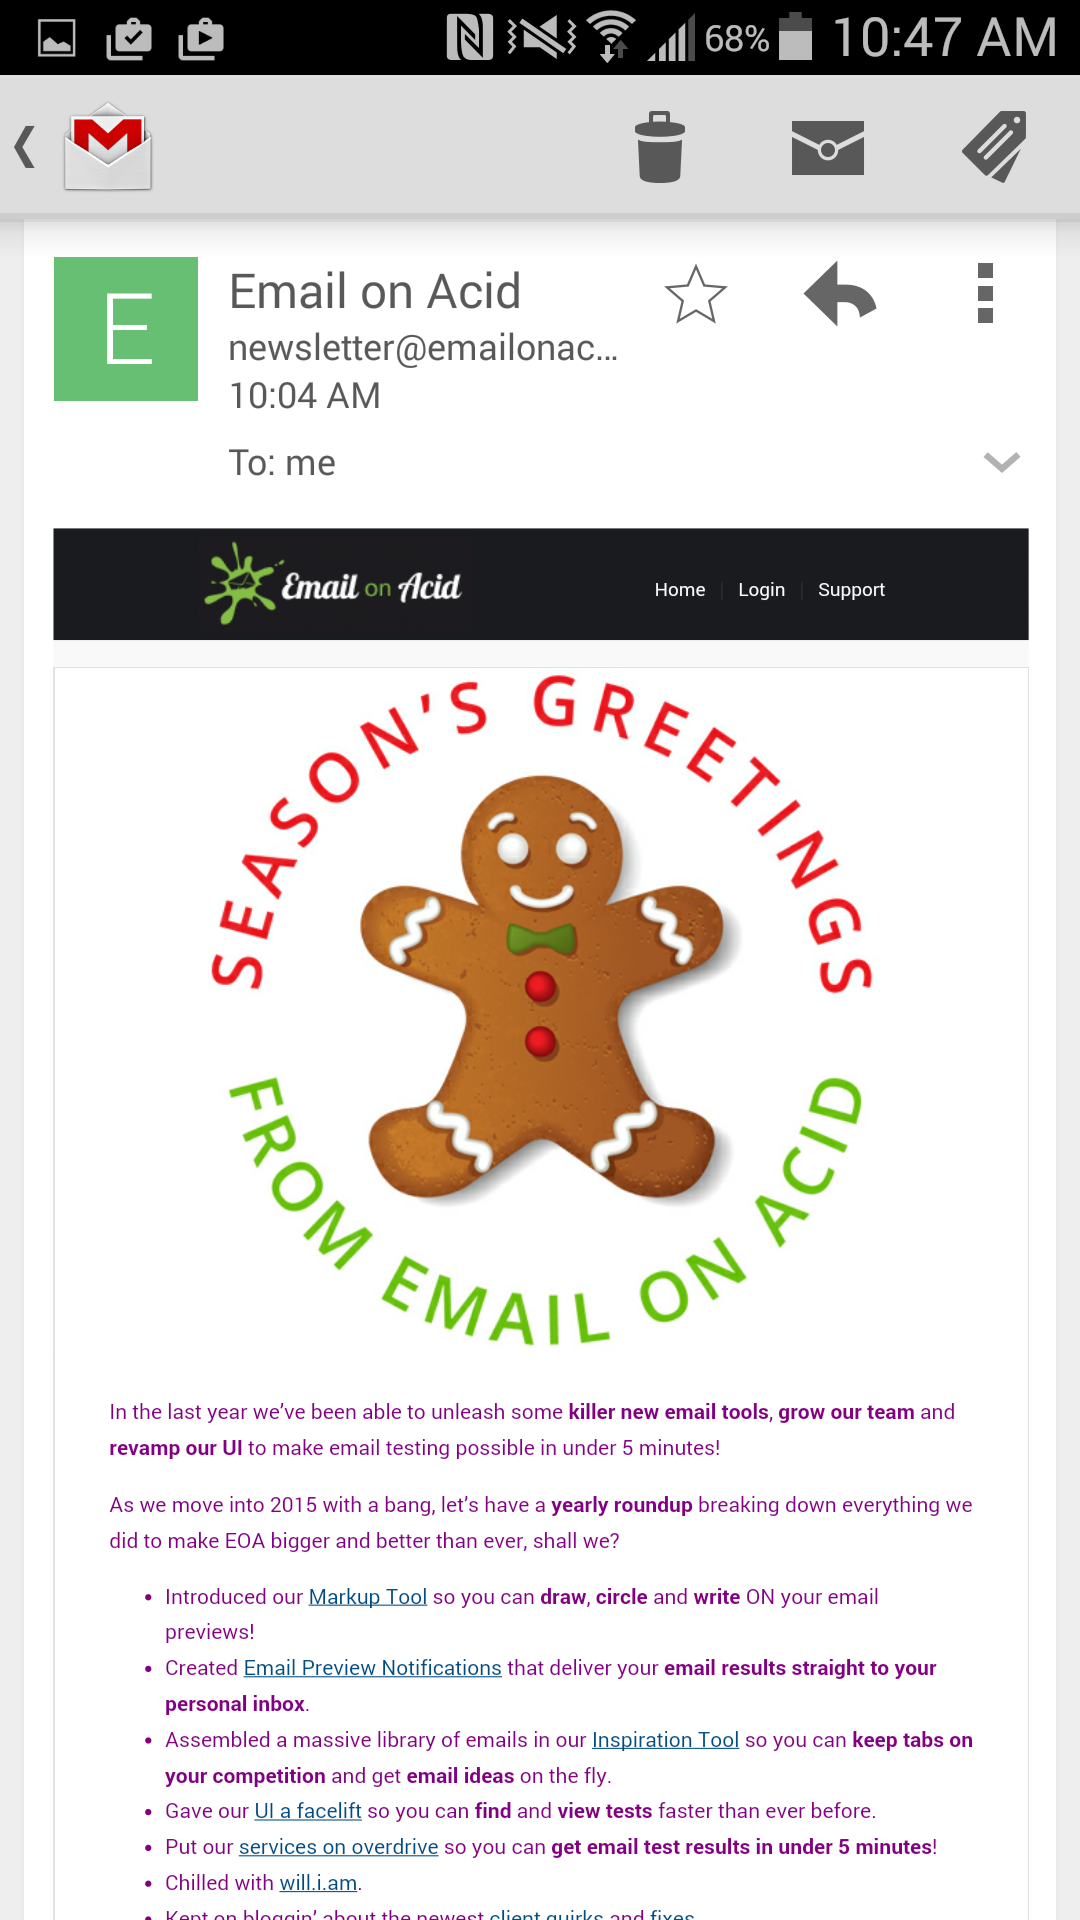 Fixed Email on Acid holiday newsletter